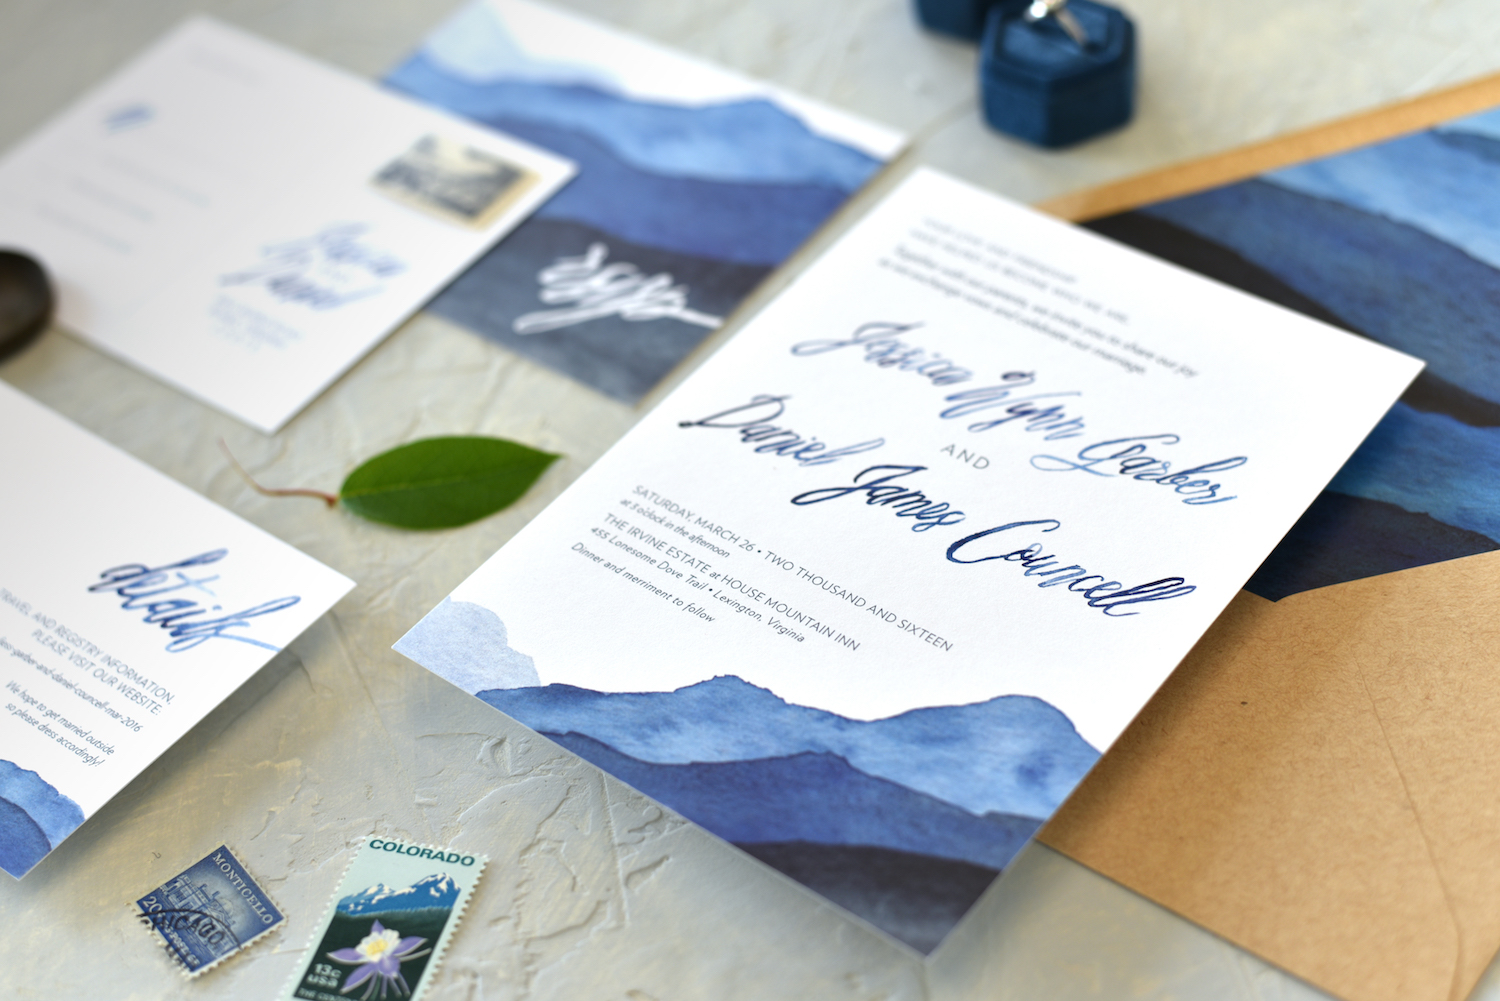 weddingpaper - Are you engaged and dreaming of something beautiful and custom for your big day? I'd love to help! Fill out the form below and we can start dreaming together!